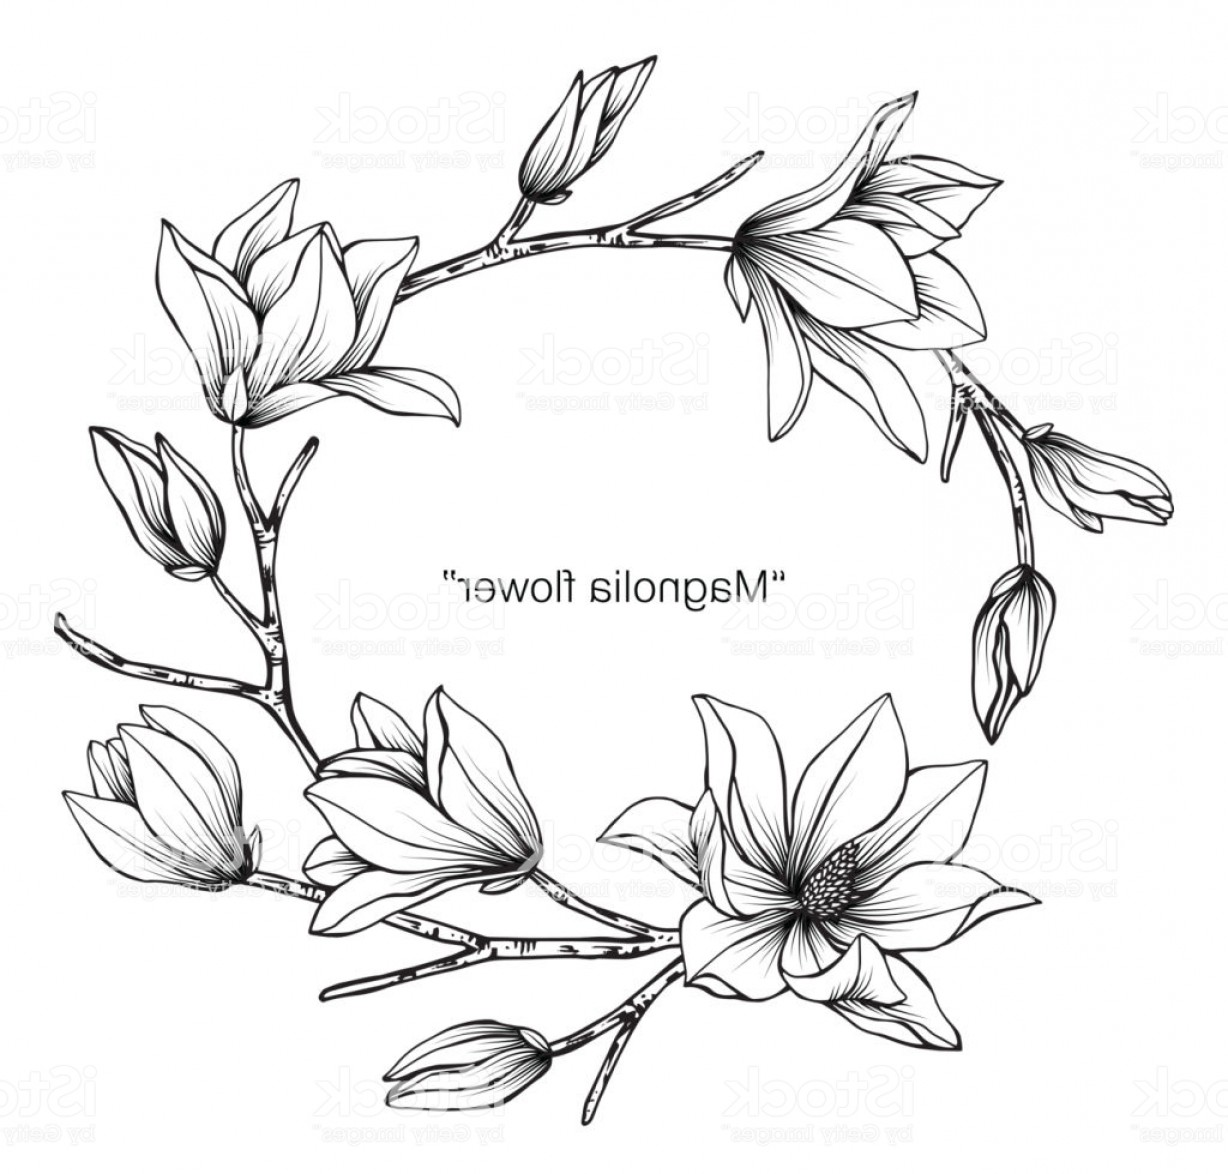 Magnolia Black And White Vector: Magnolia Flower Drawing Illustration Black And White With Line Art On White Gm